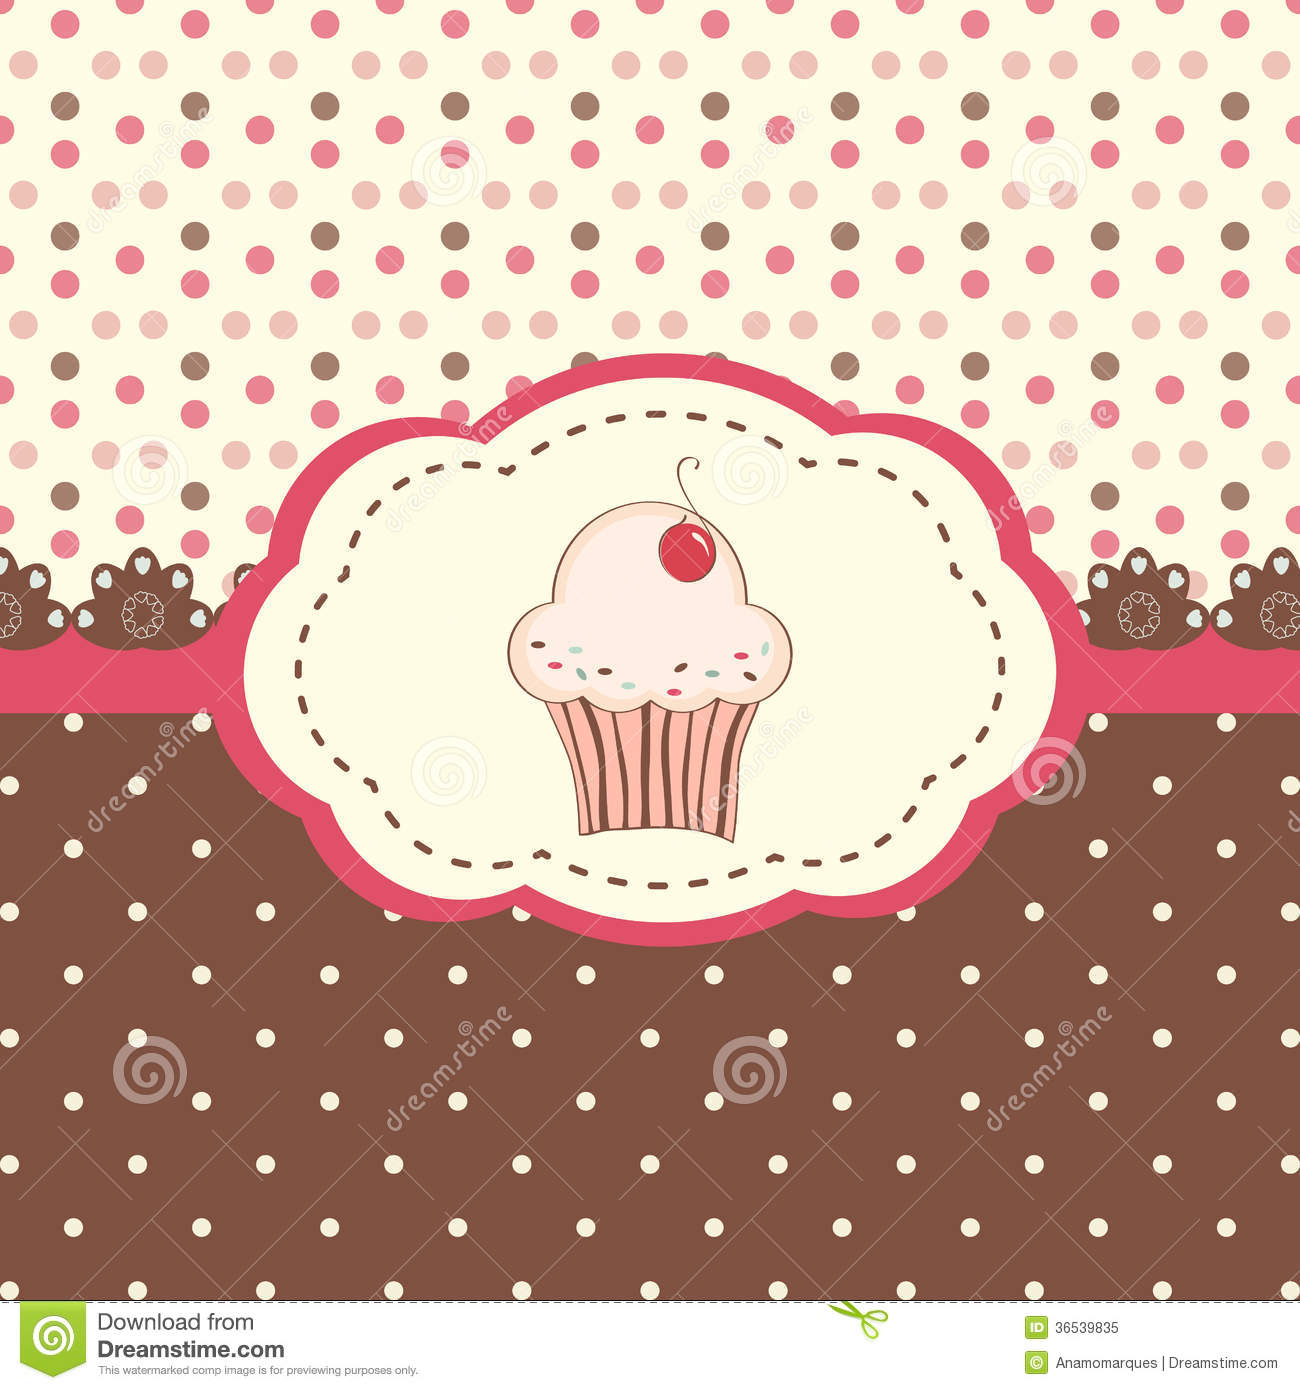 card menu with cupcake and polka dots background stock